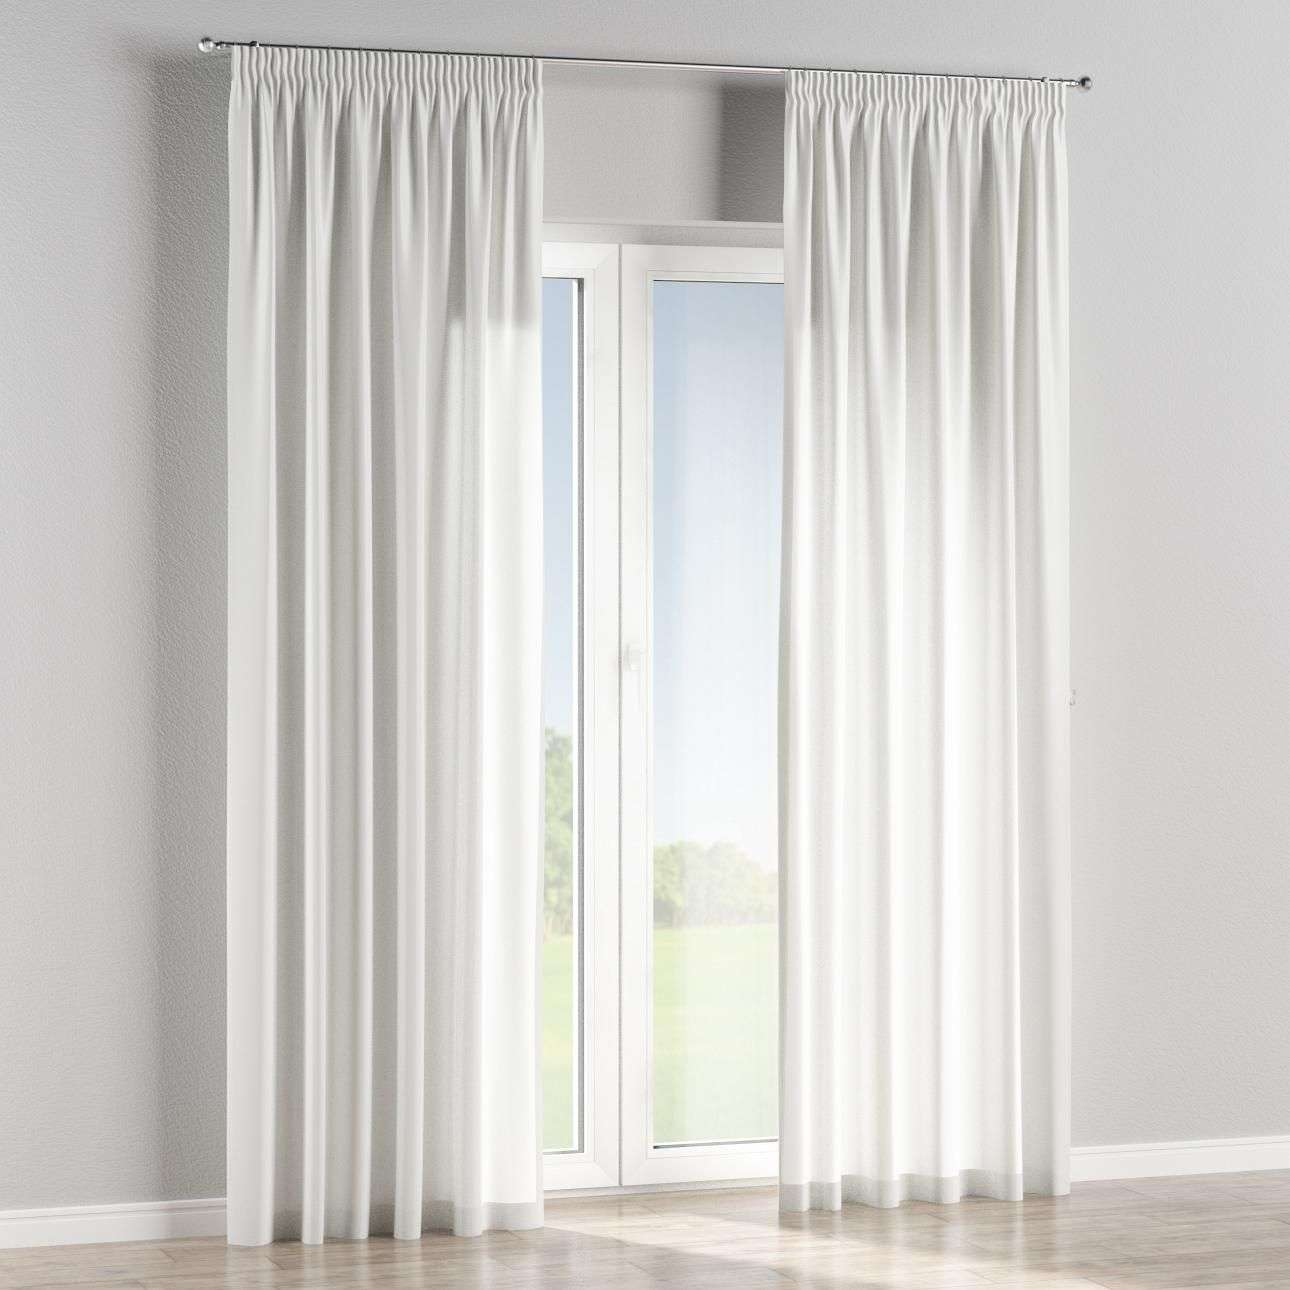 Pencil pleat curtains in collection Milano, fabric: 150-33